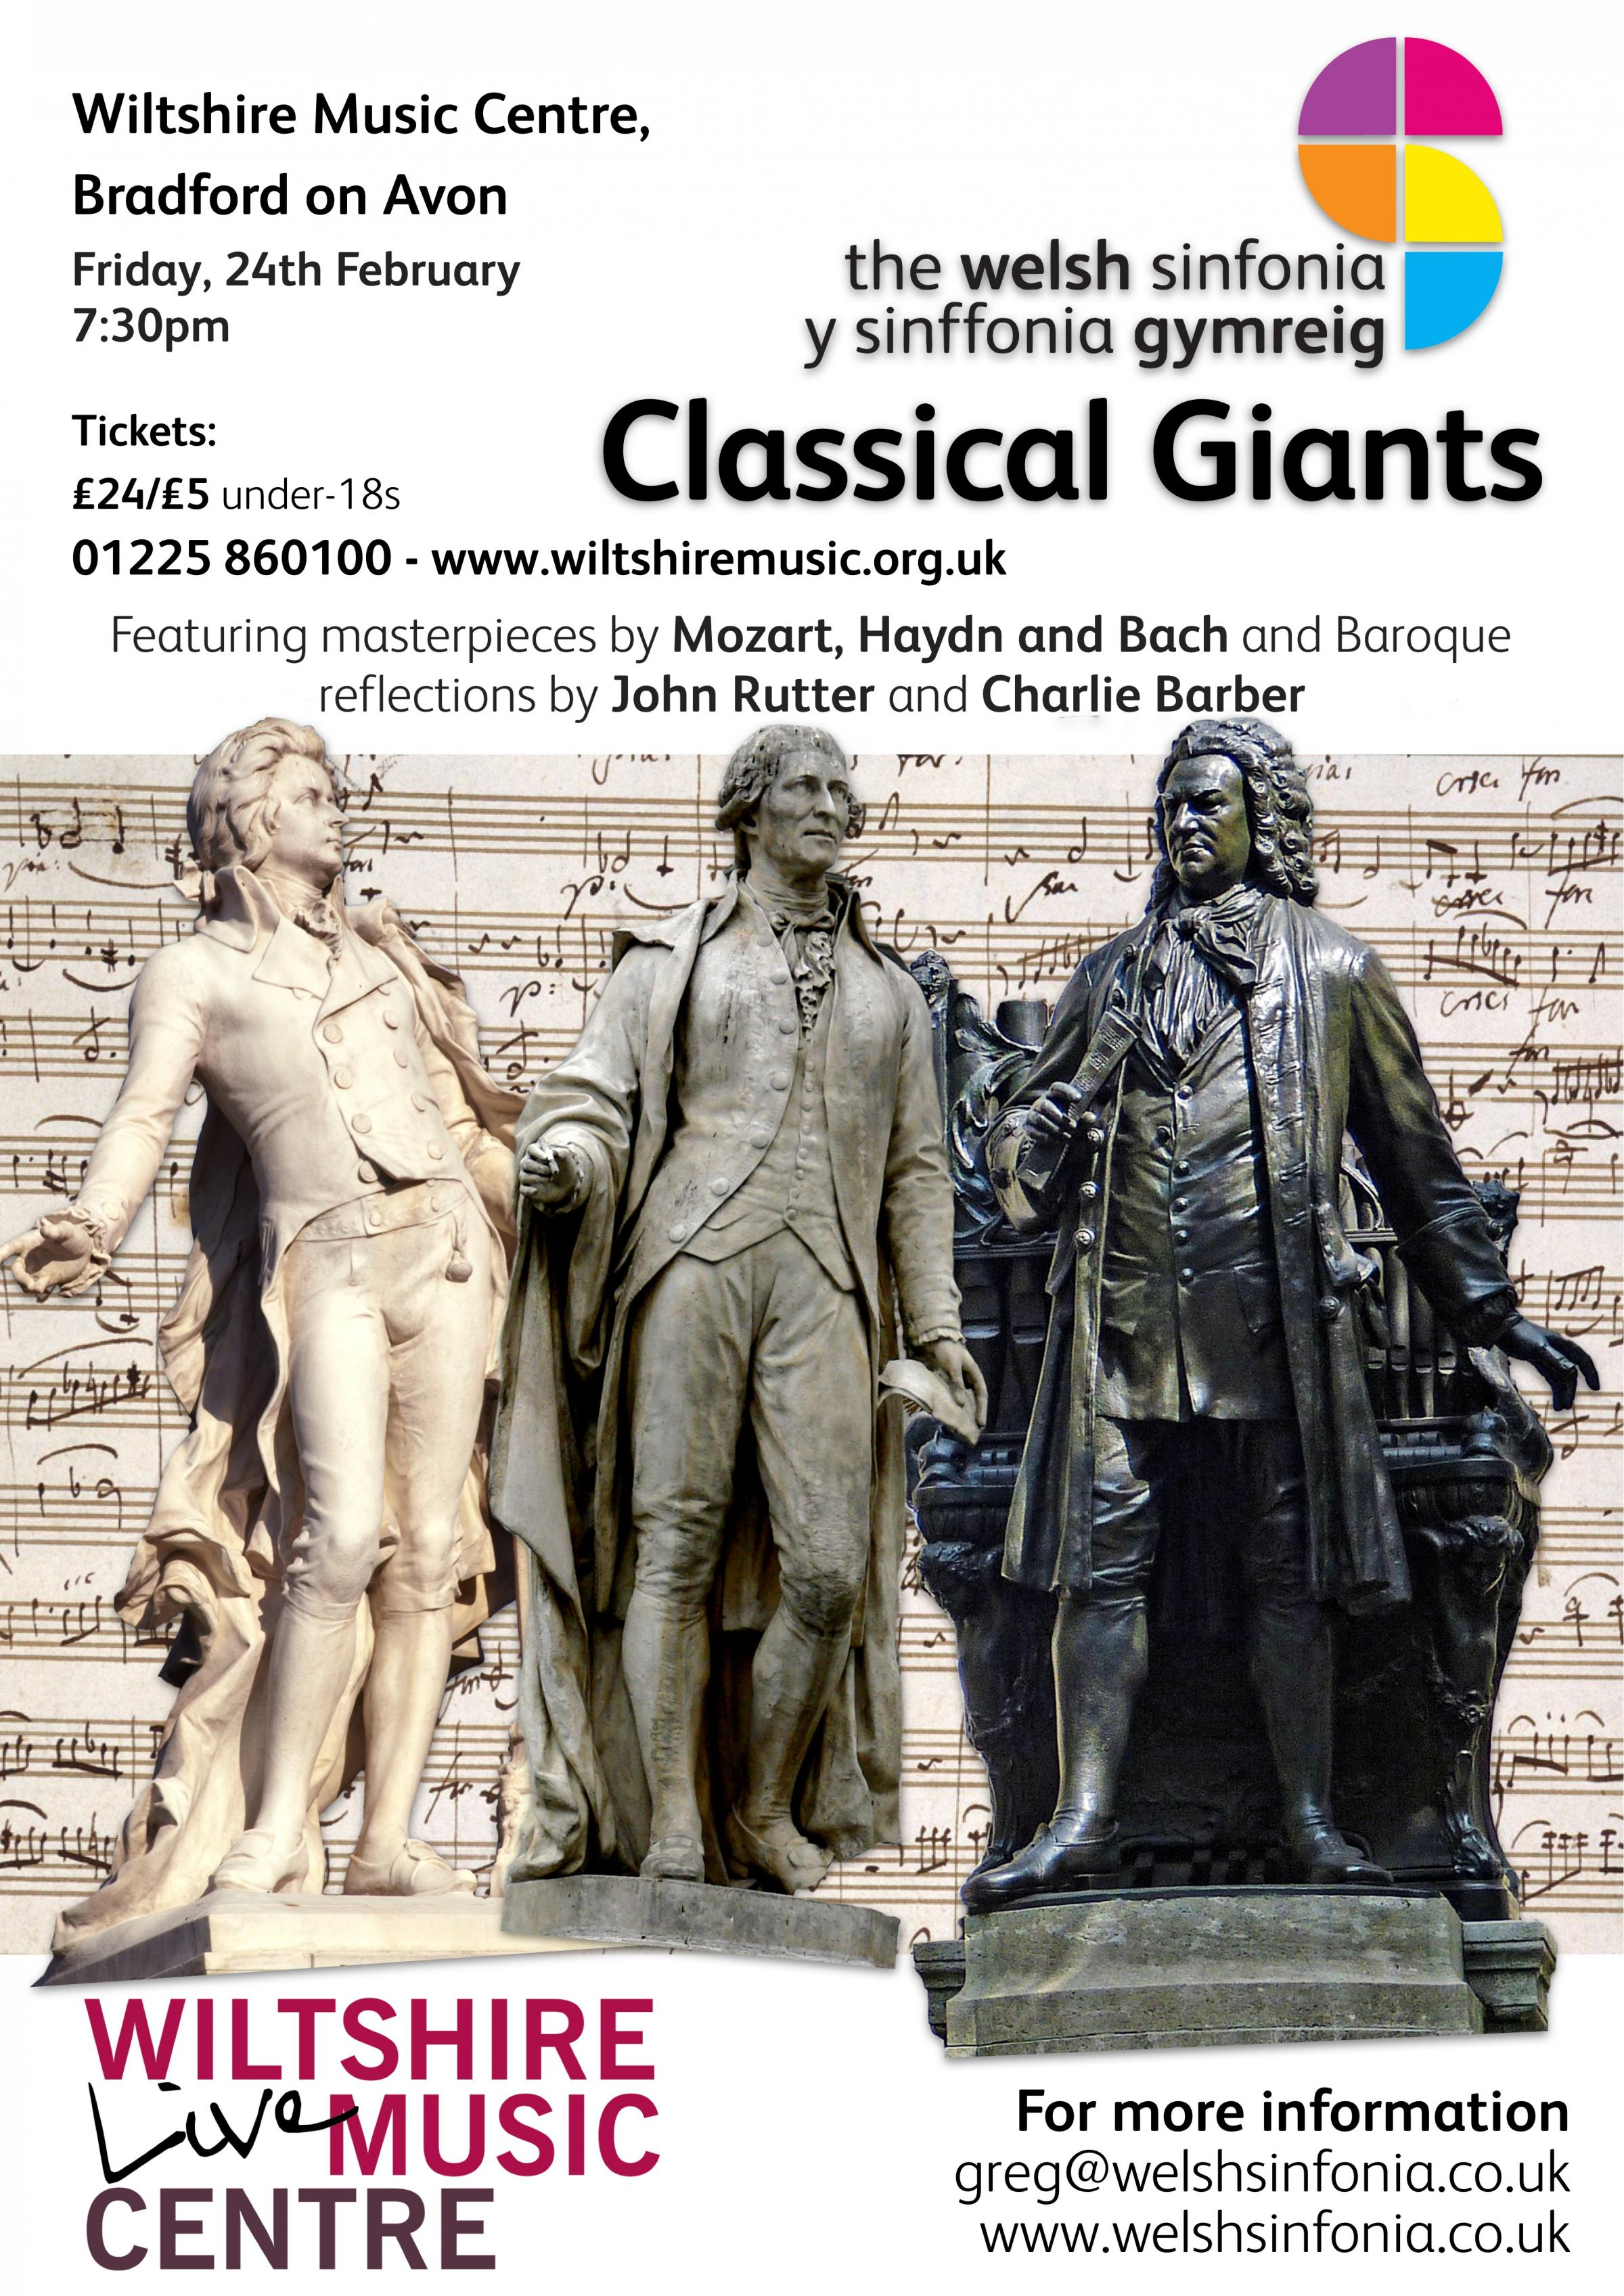 The Welsh Sinfonia - Classical Giants